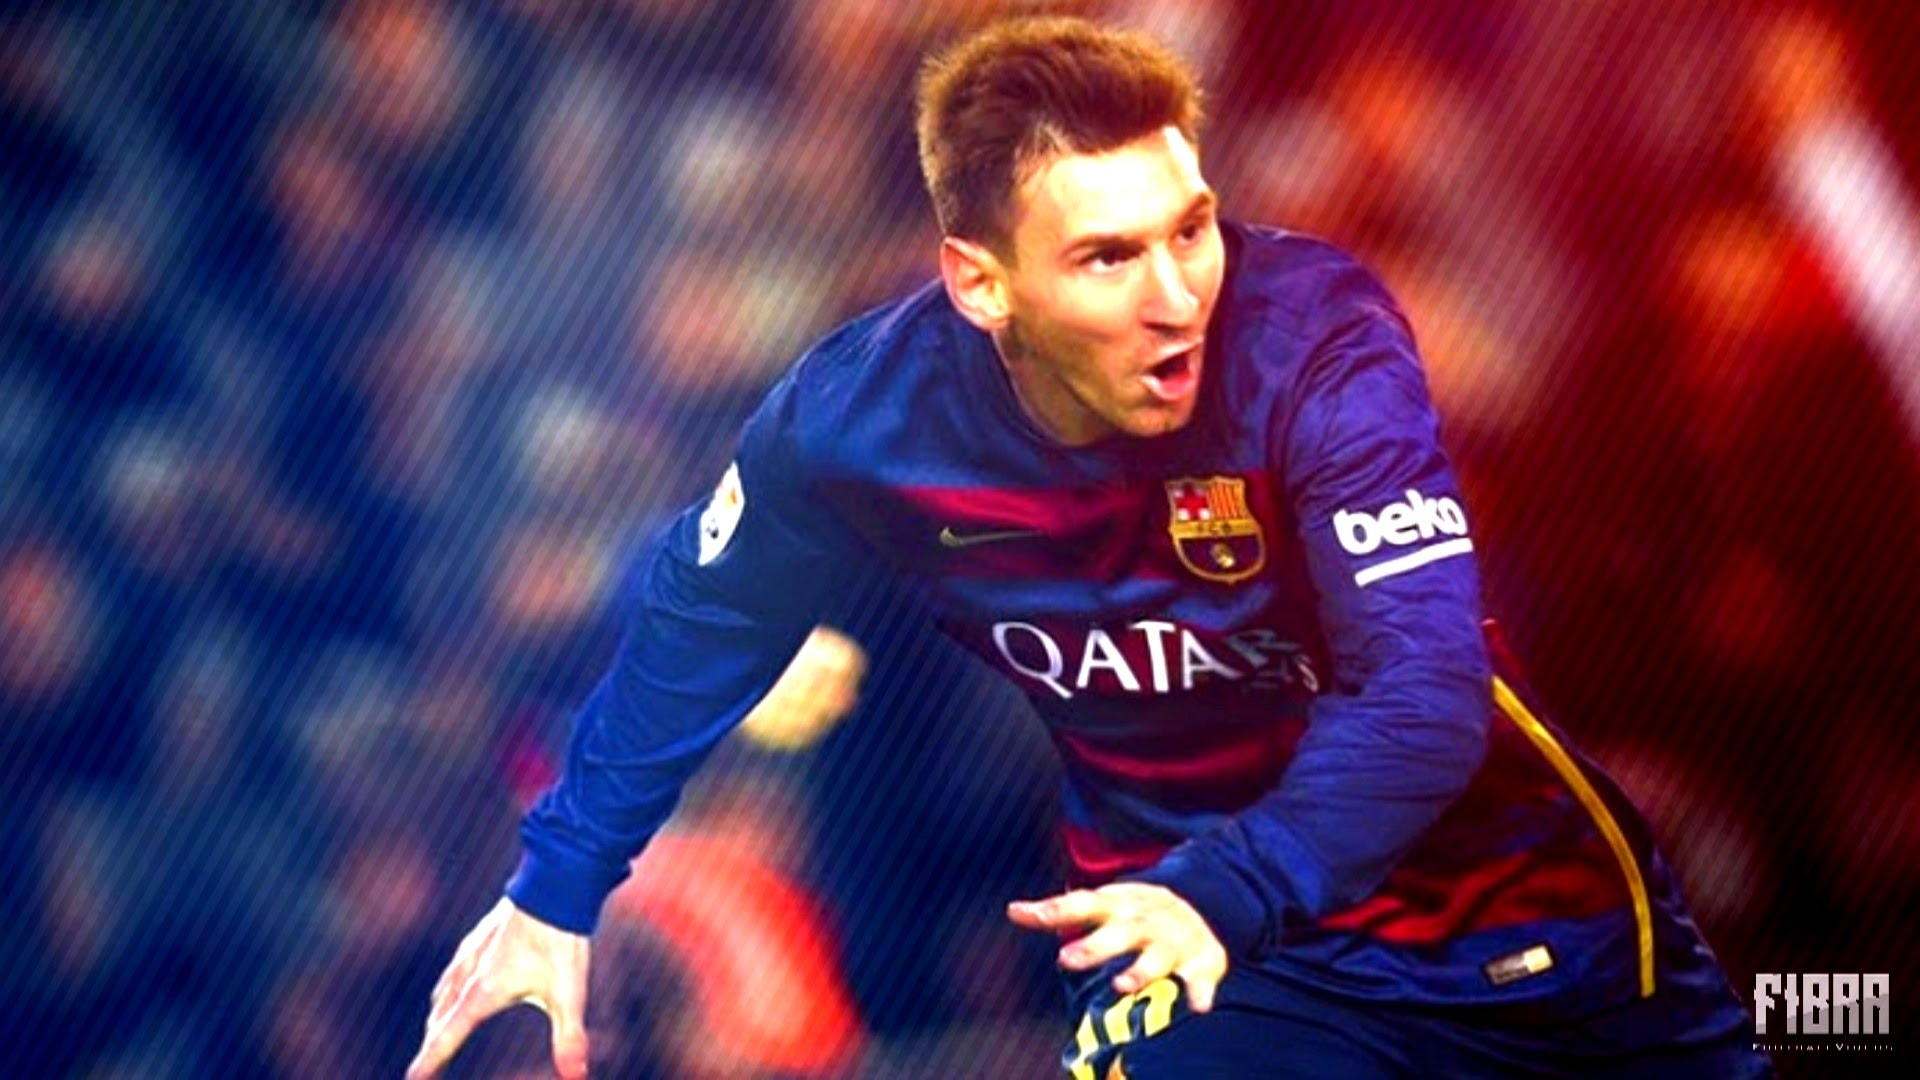 Messi HD Wallpapers The Exclusive List Sporteology 1920x1080